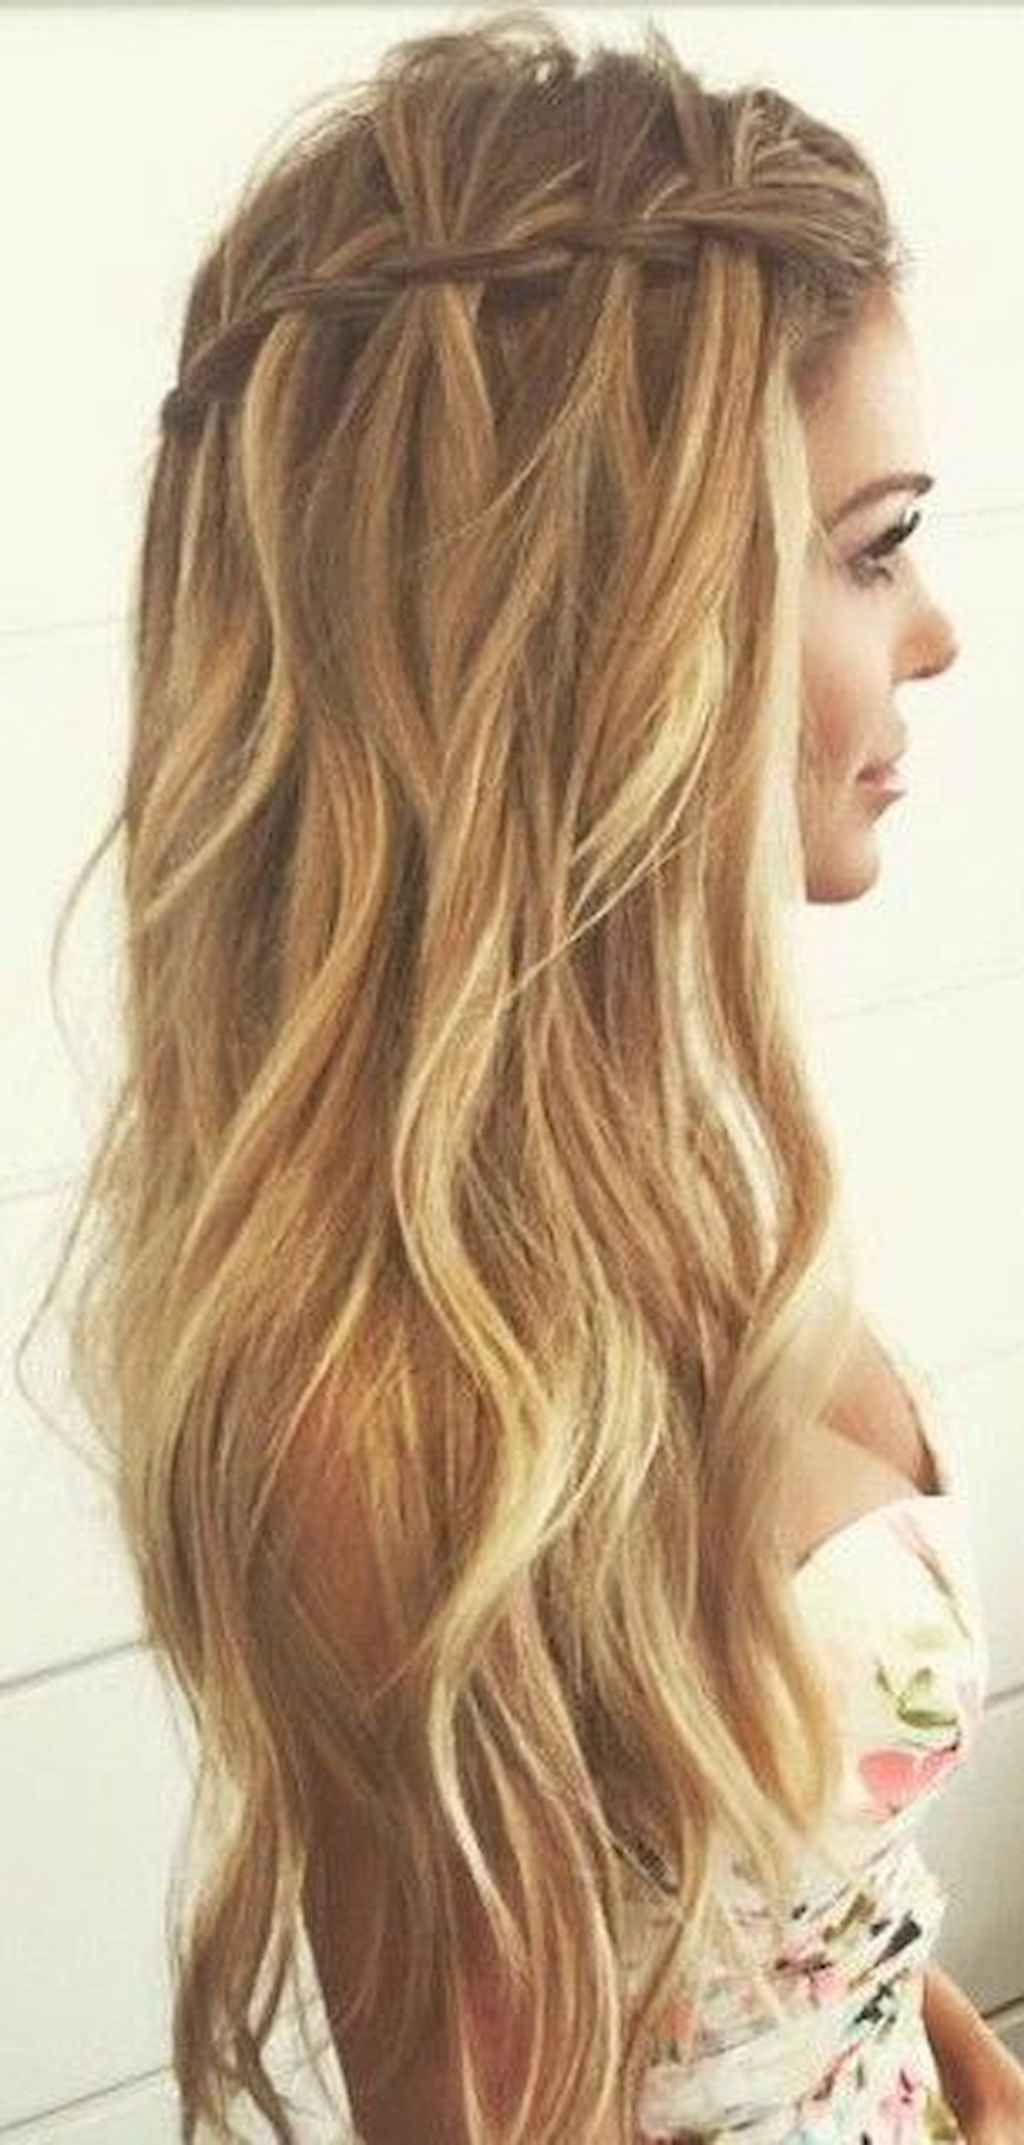 31 Easy Summer Hairstyle To Do Yourself